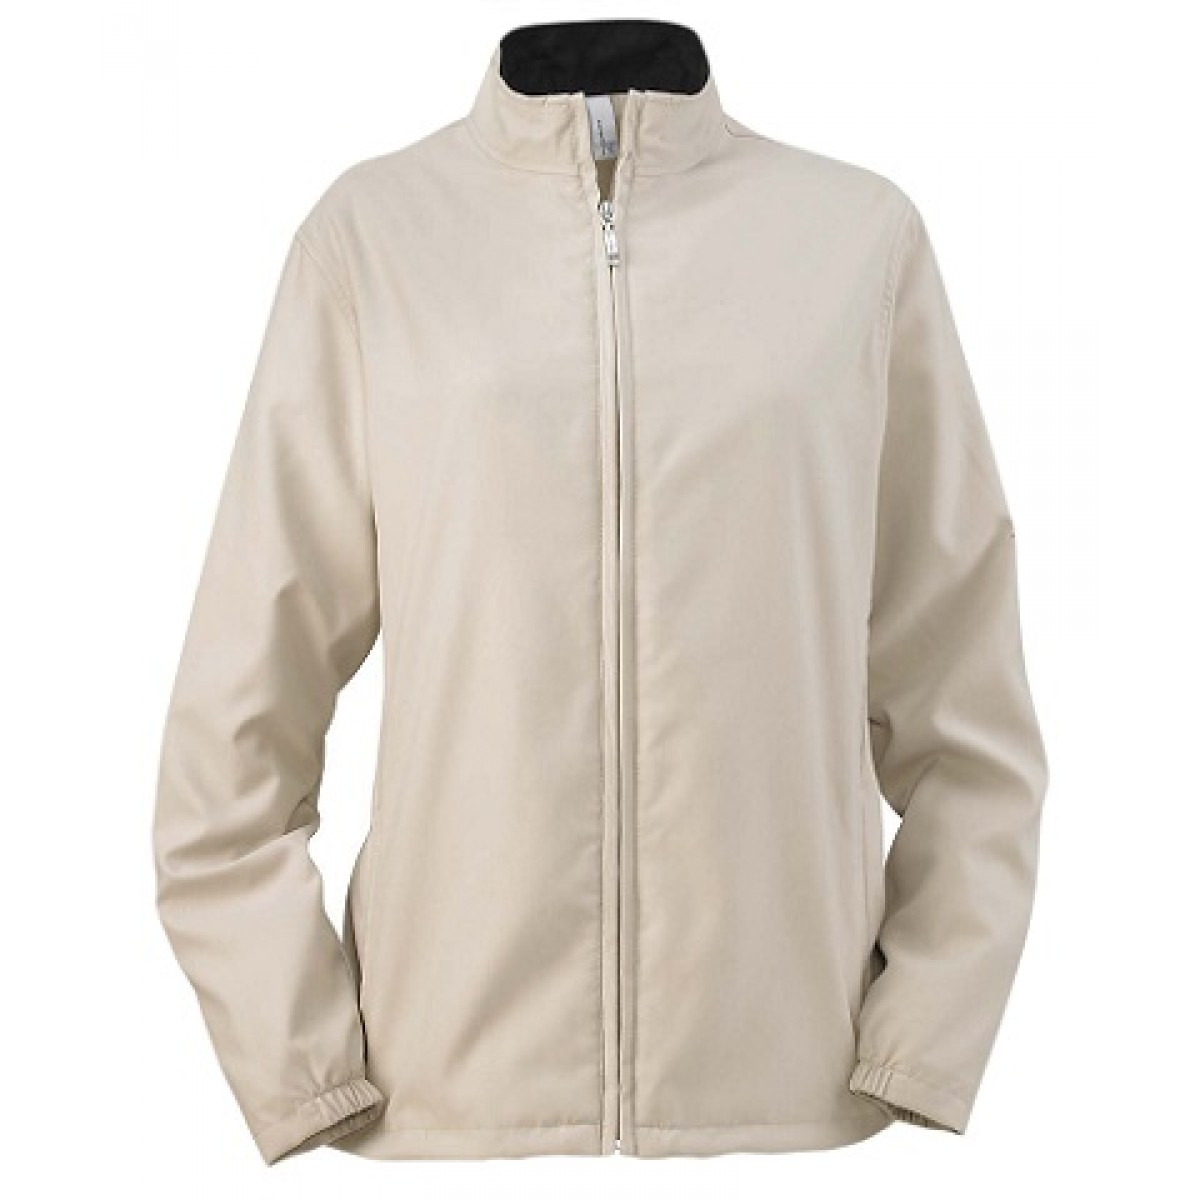 Ladies' Full-Zip Lined Wind Jacket-S